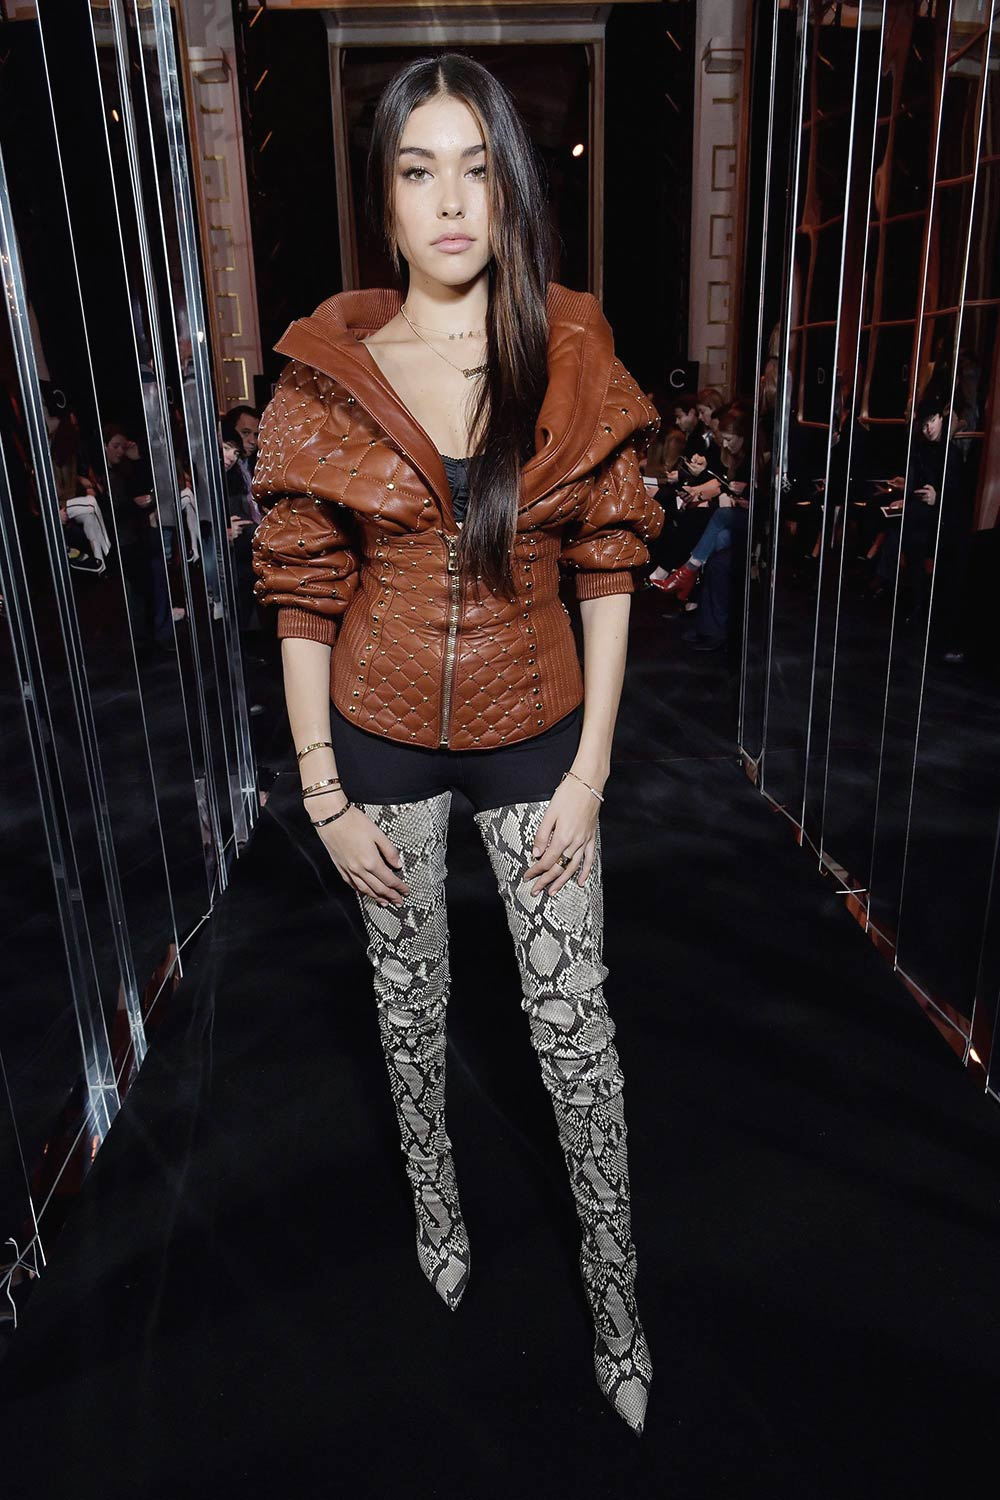 Madison Beer attends the Balmain show